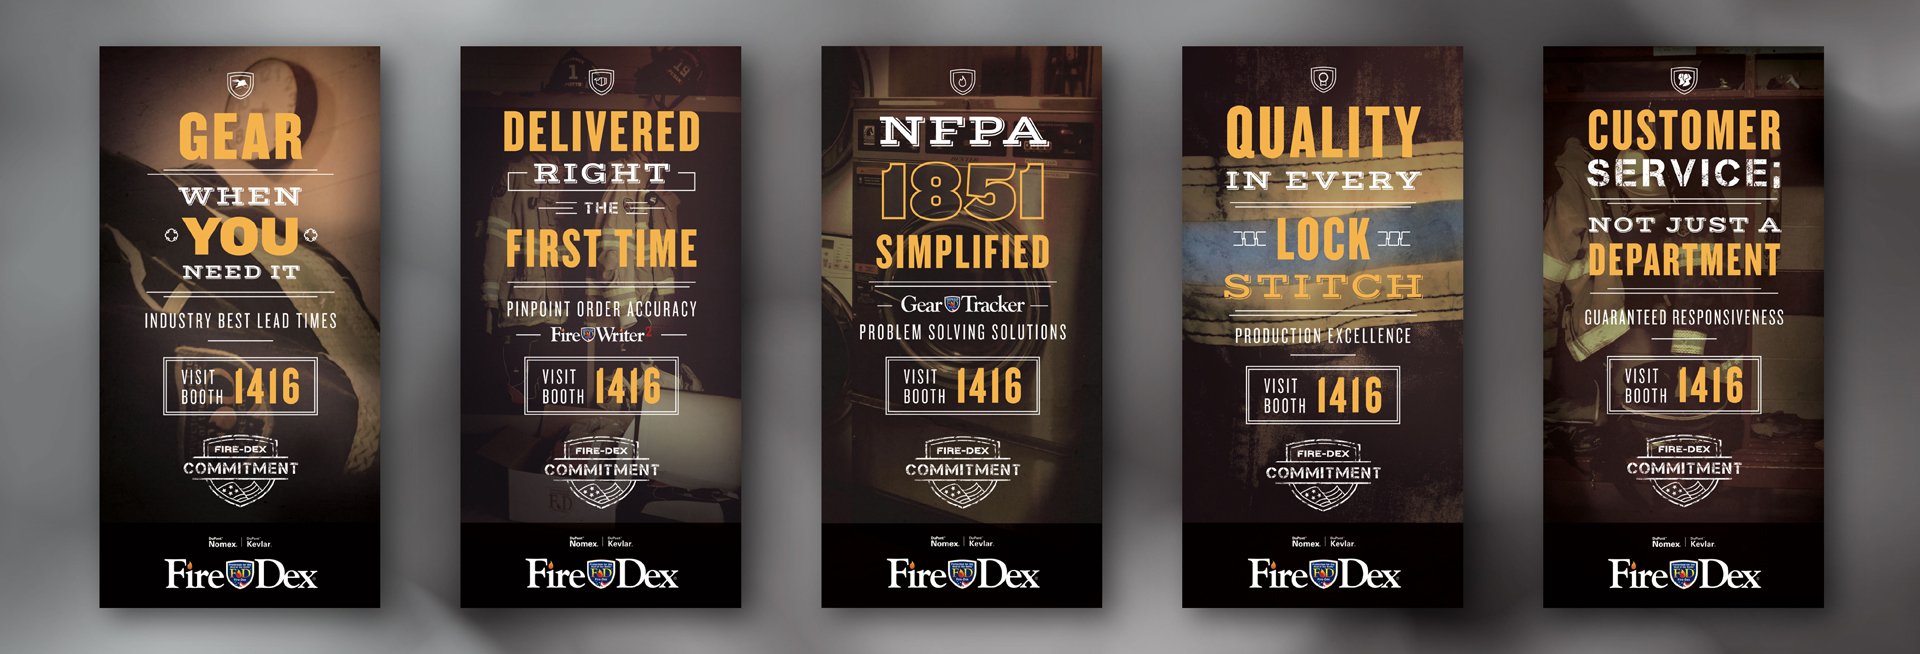 FireDex Graphic Design Posters FDIC 2015